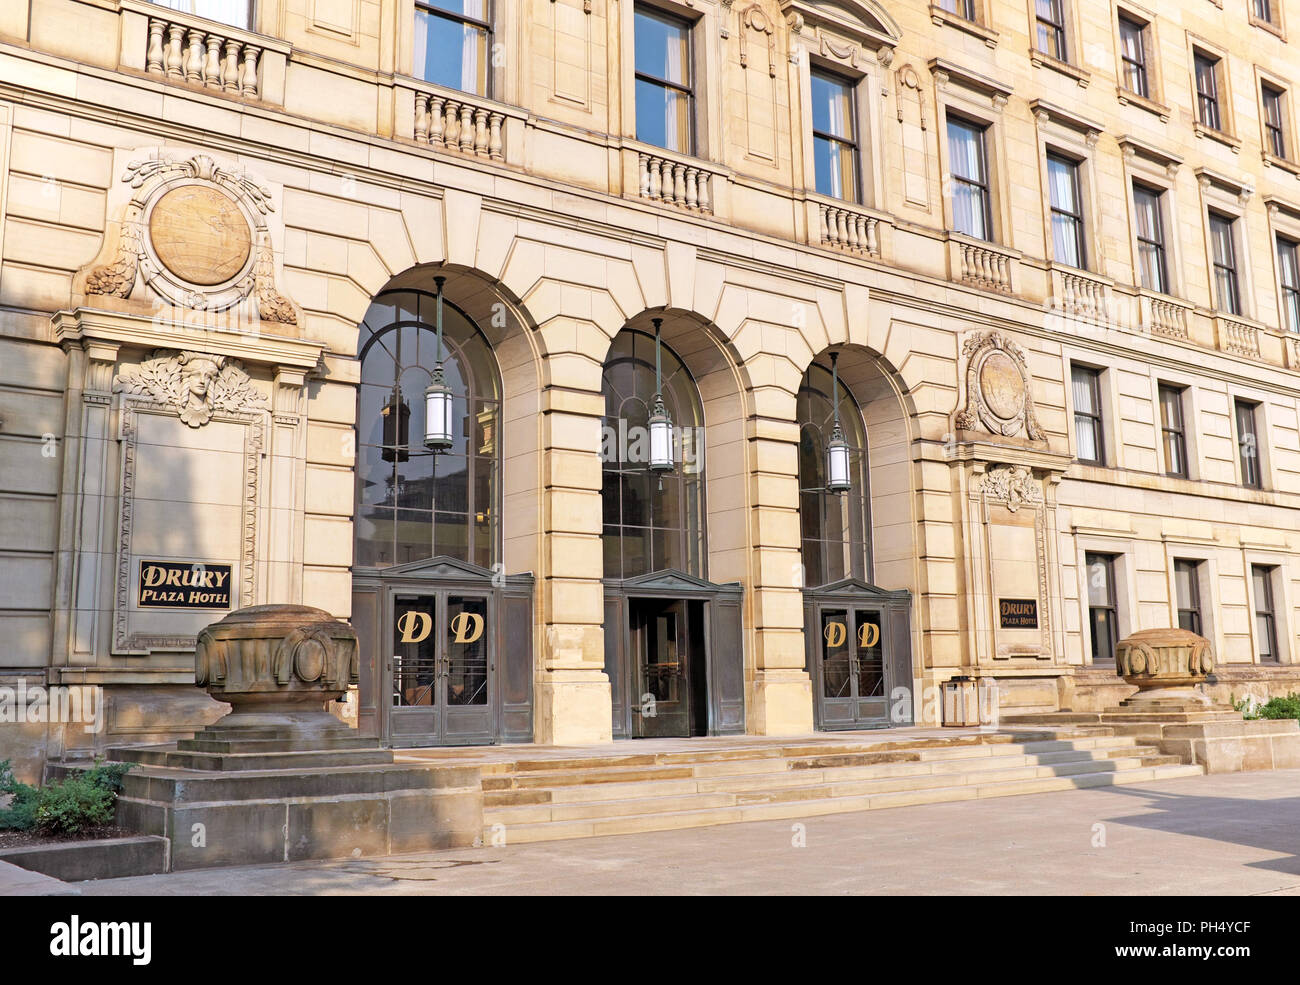 The Drury Hotel in downtown Cleveland Ohio is a beaux-arts structure renovated from Cleveland Board of Education offices into a 189-room hotel. Stock Photo